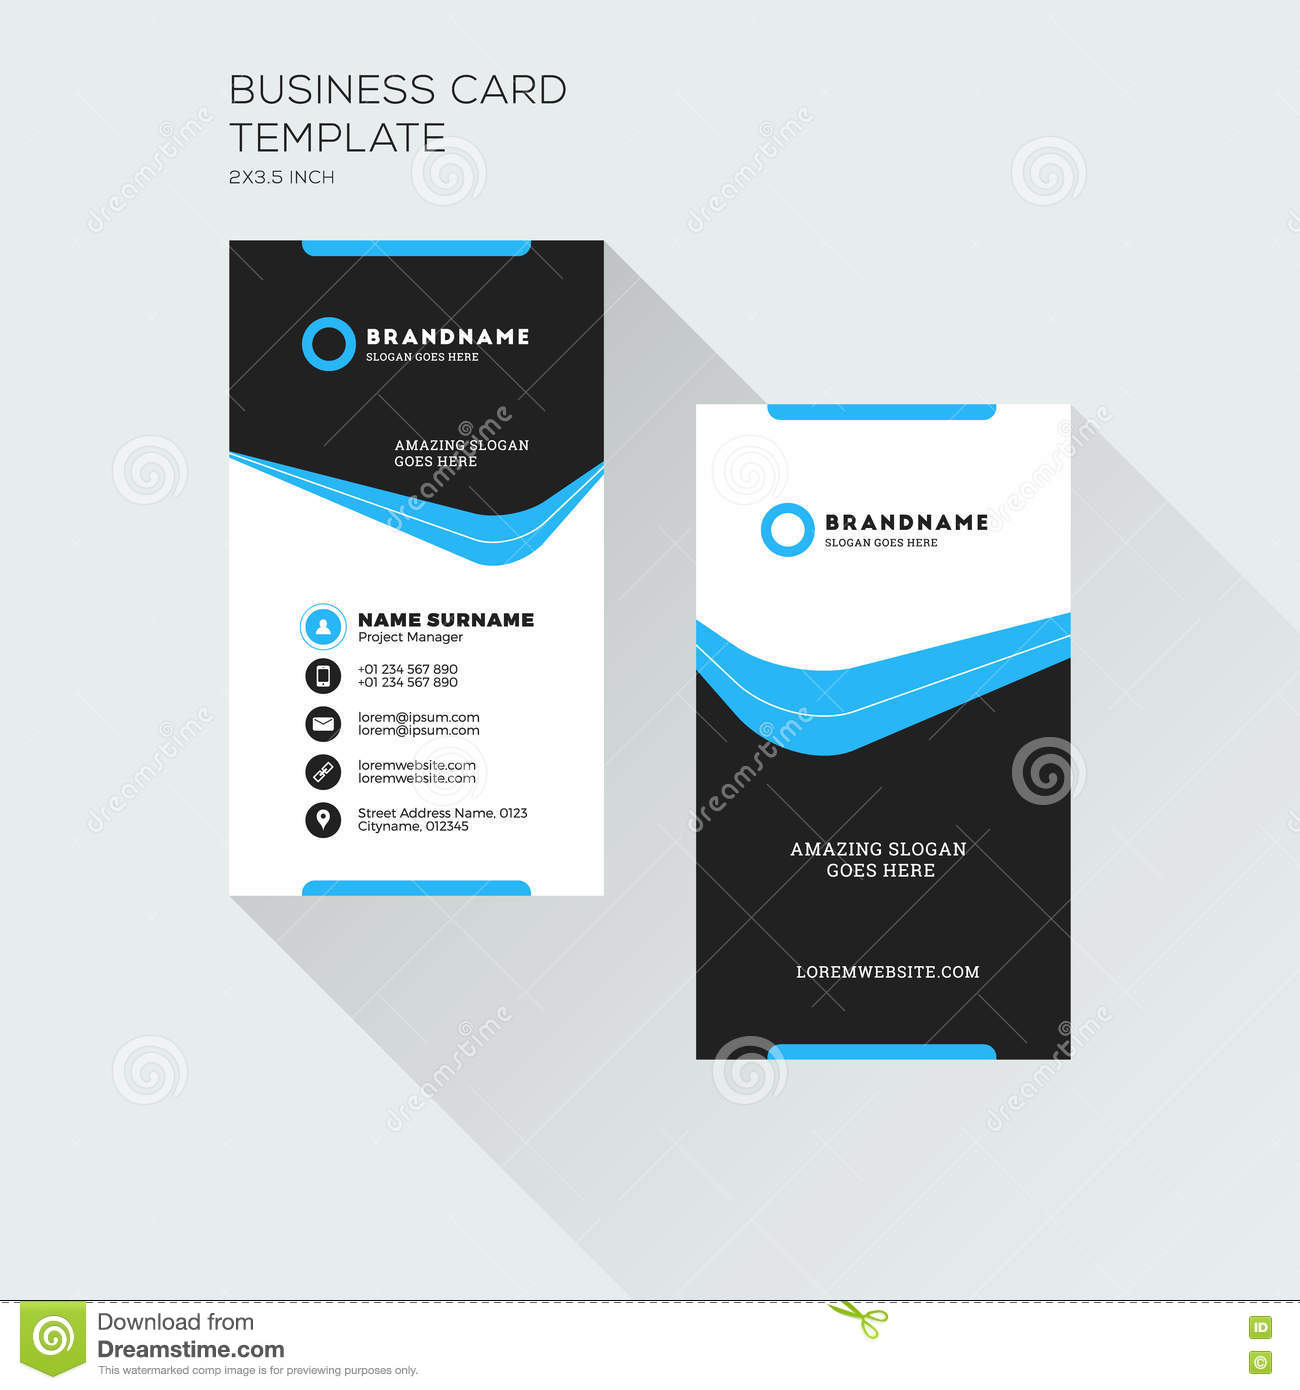 Vertical business card print template personal visiting card wi download vertical business card print template personal visiting card wi stock vector illustration of accmission